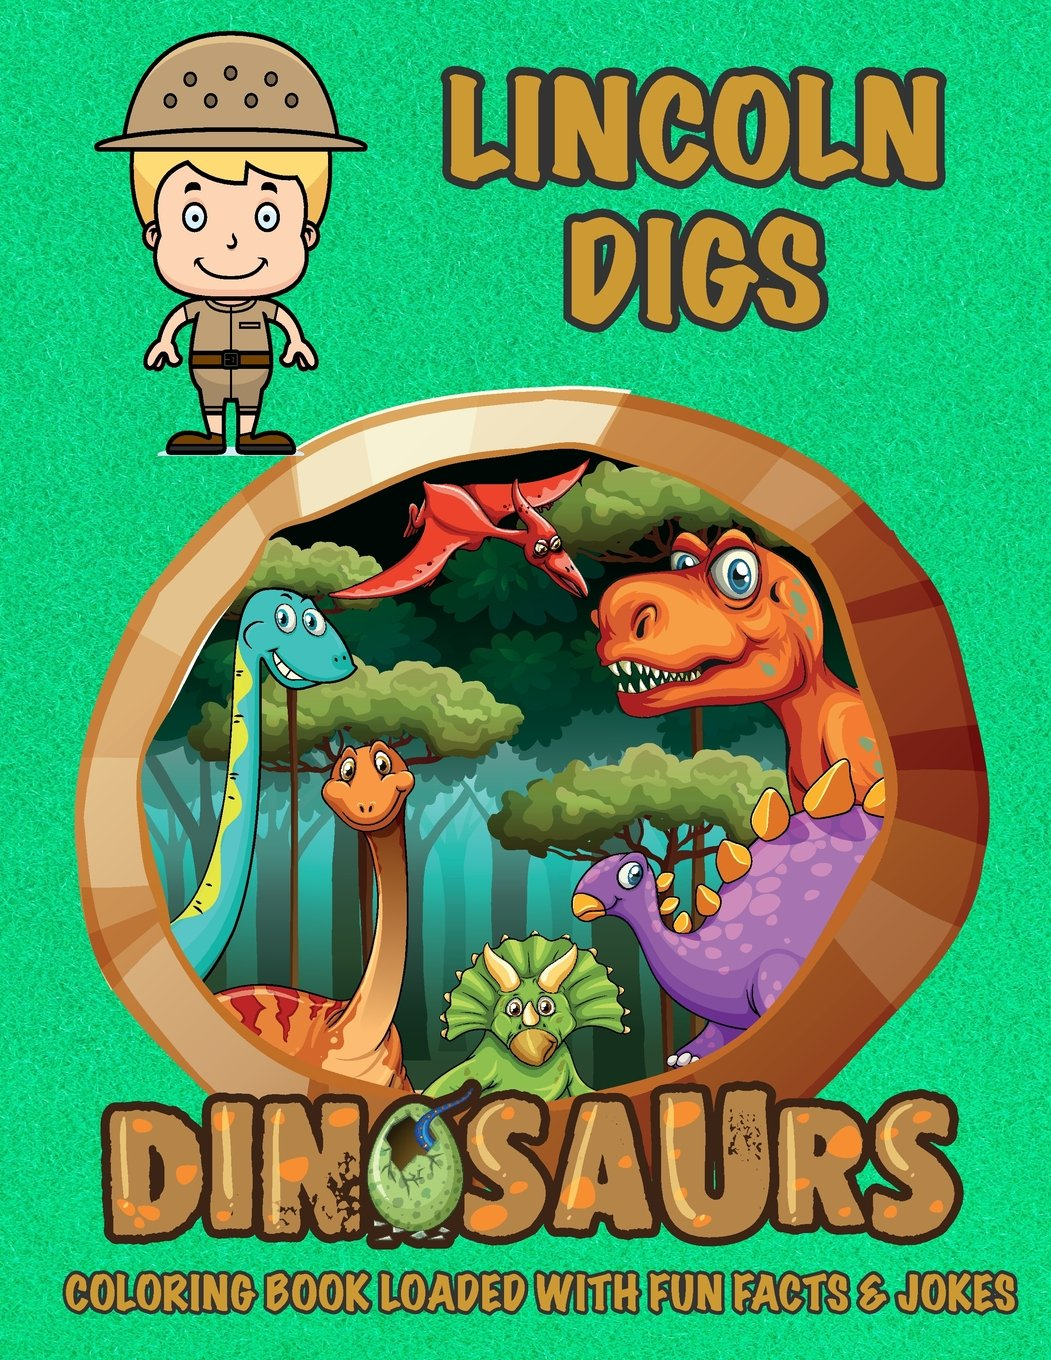 Lincoln Digs Dinosaurs Coloring Book Loaded With Fun Facts & Jokes (Personalized Books for Children) PDF